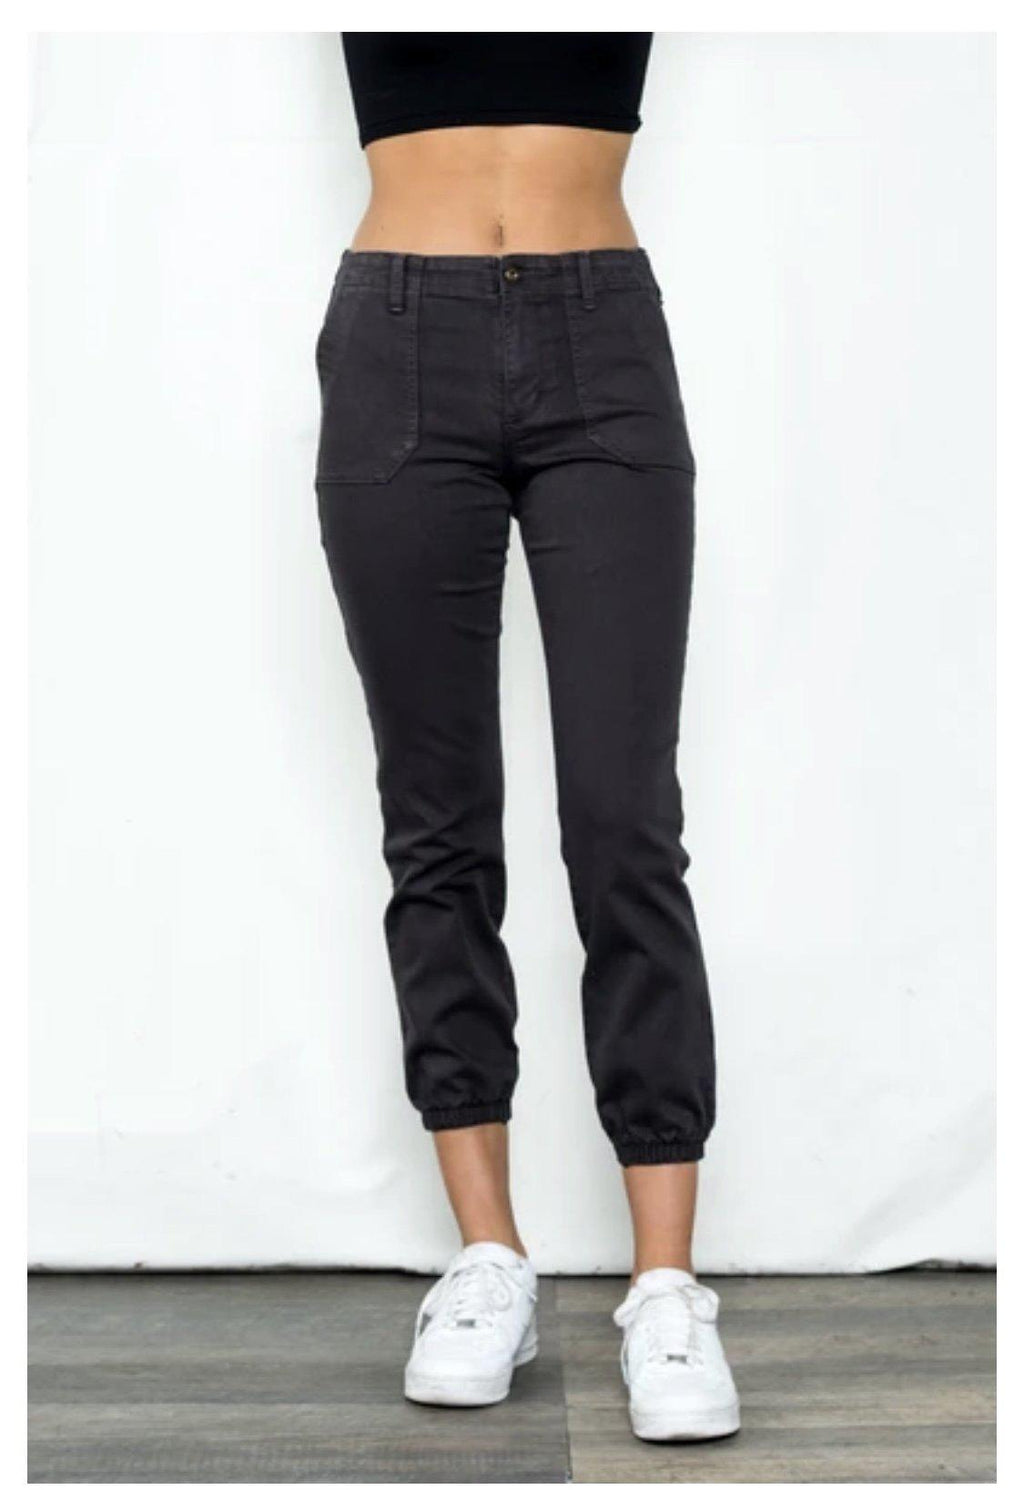 Sneak Peak Mid Rise Jogger-Jeans-Sneak Peek Denim-Litchfield Lane Boutique